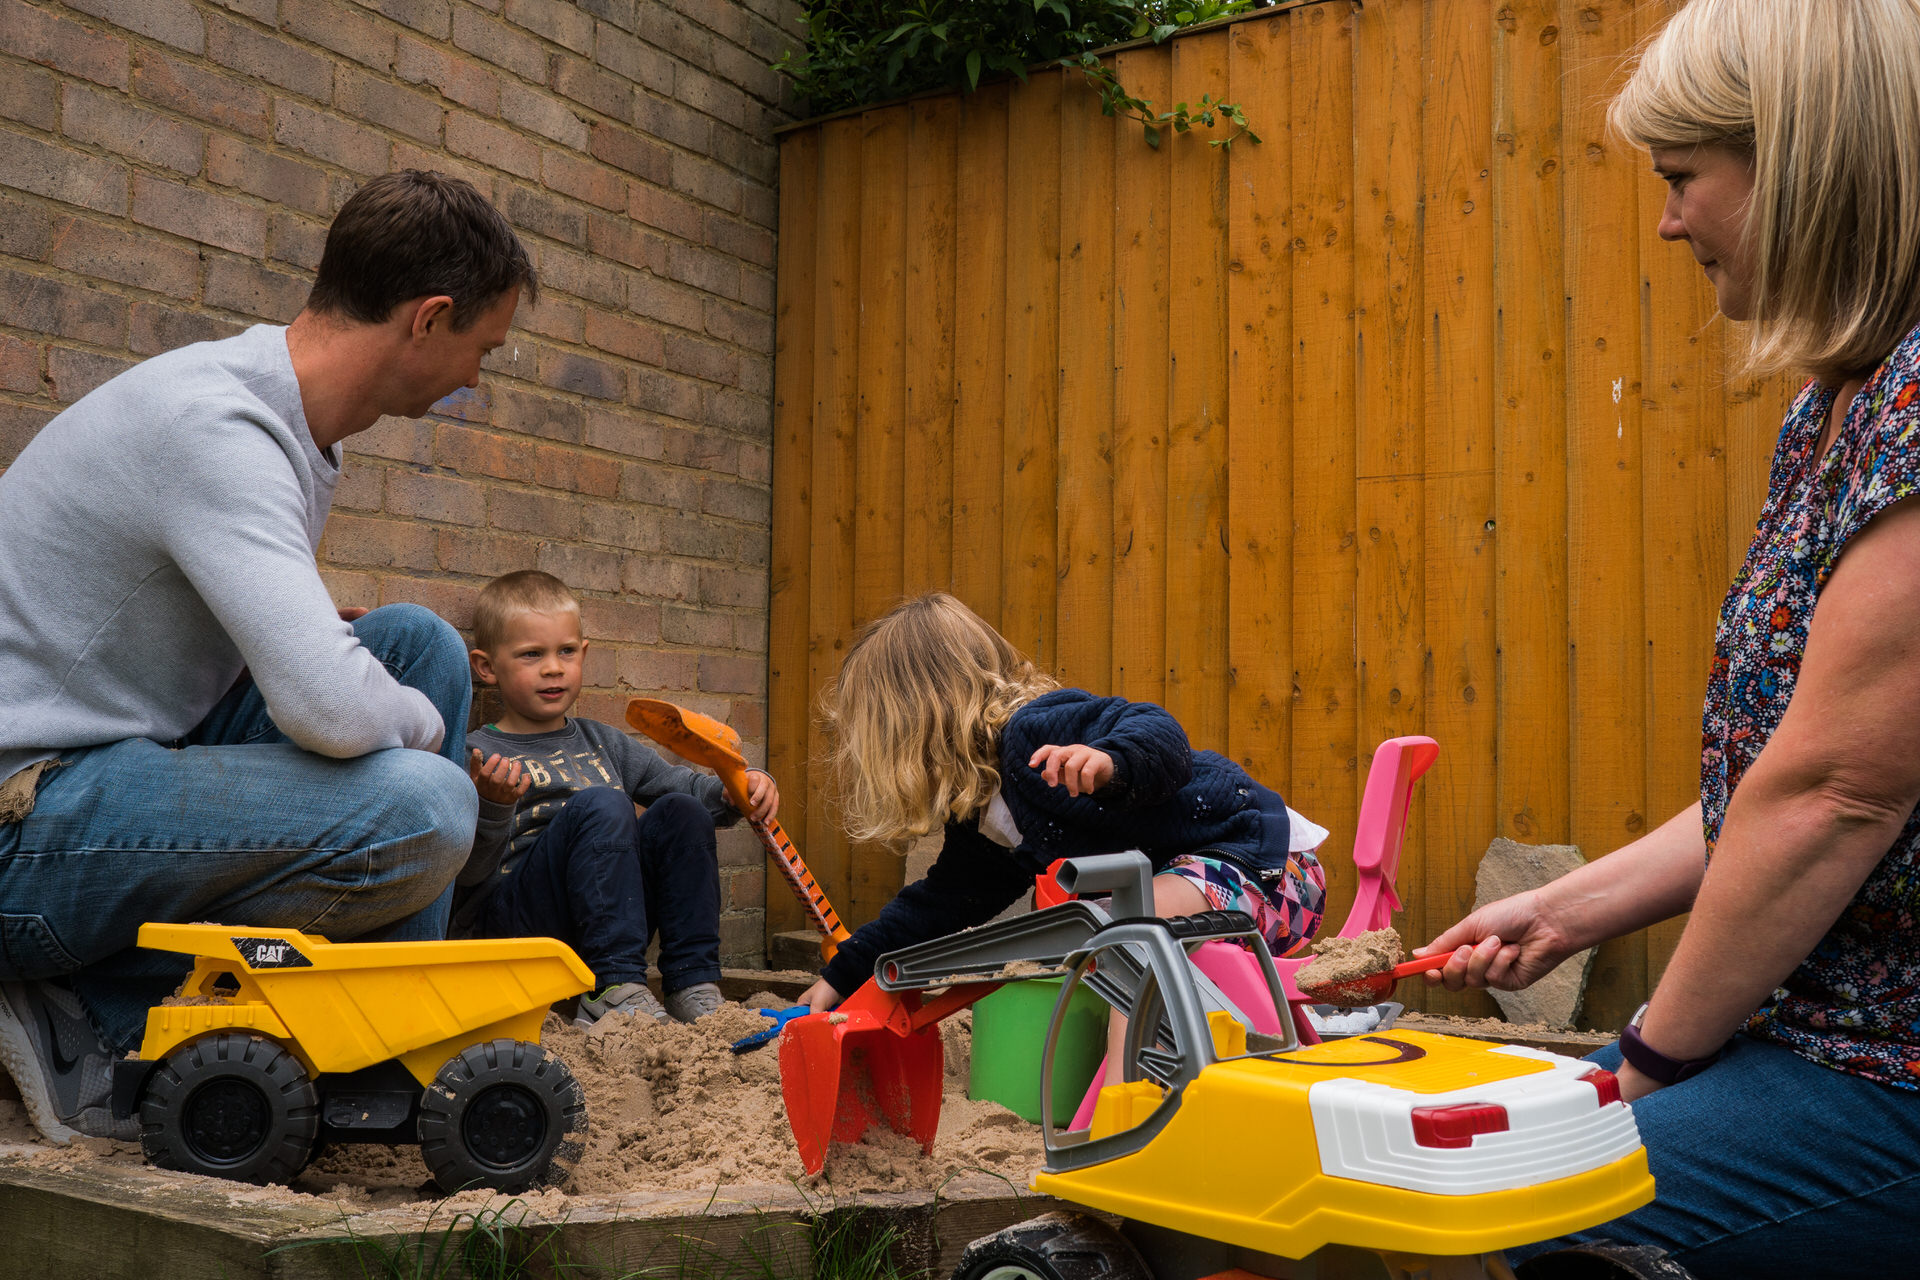 parents play in the sand pit during a family photo shoot in Wetherby